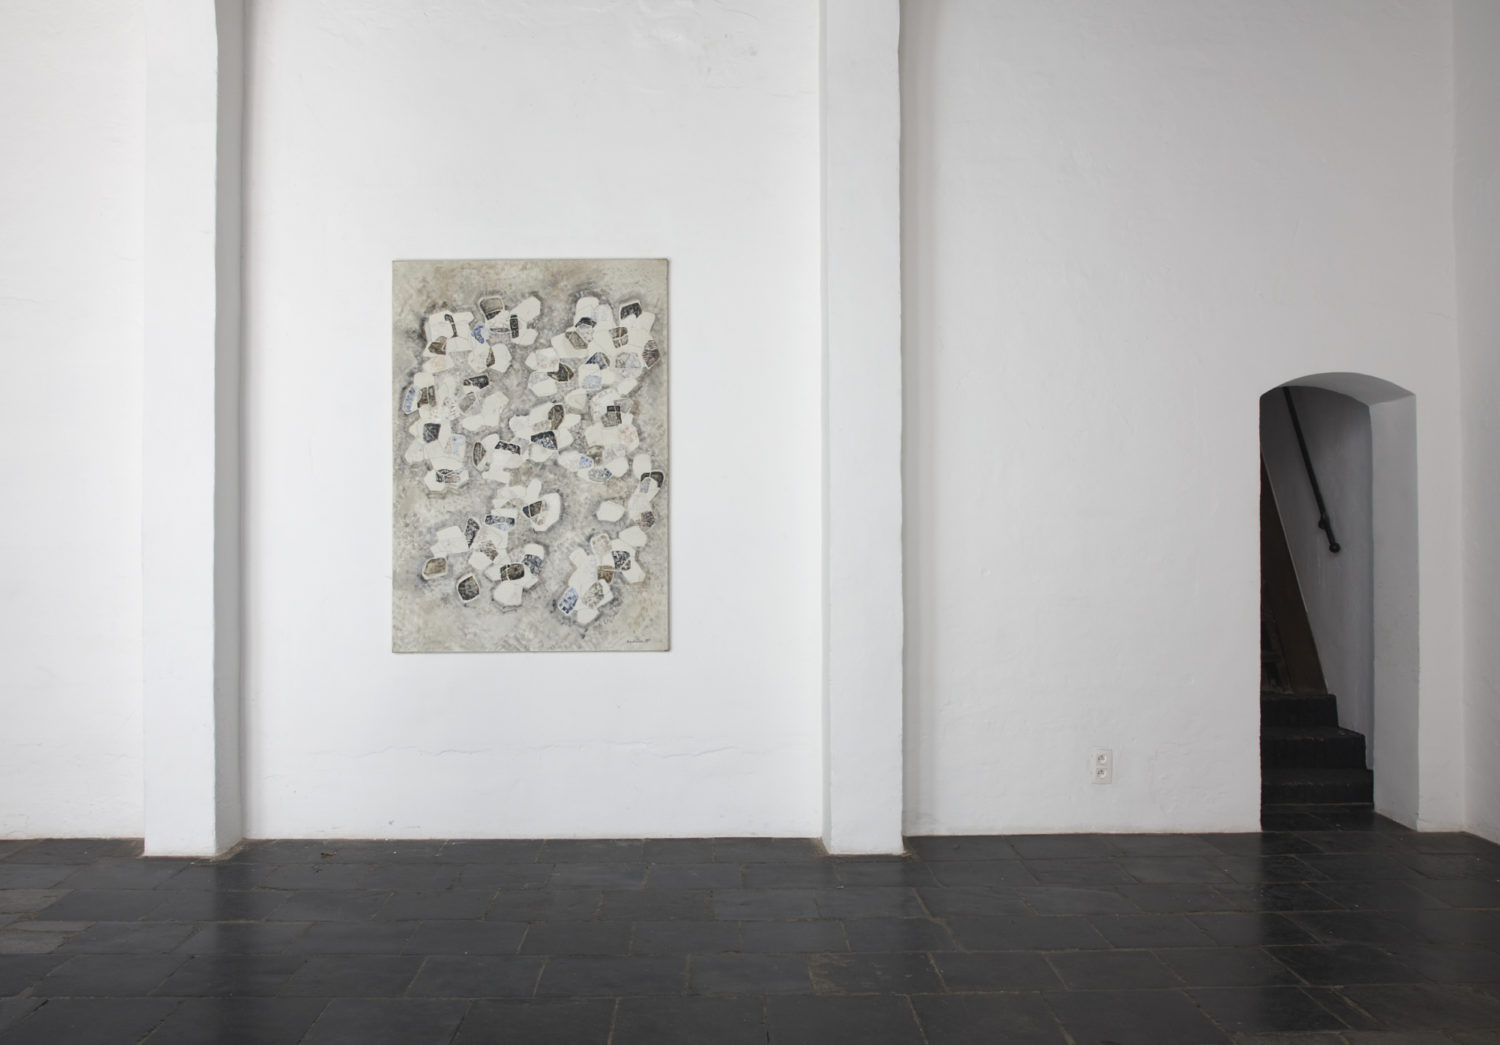 Installation view Ida Barbarigo, Unity in Depth at Axel Vervoordt Gallery